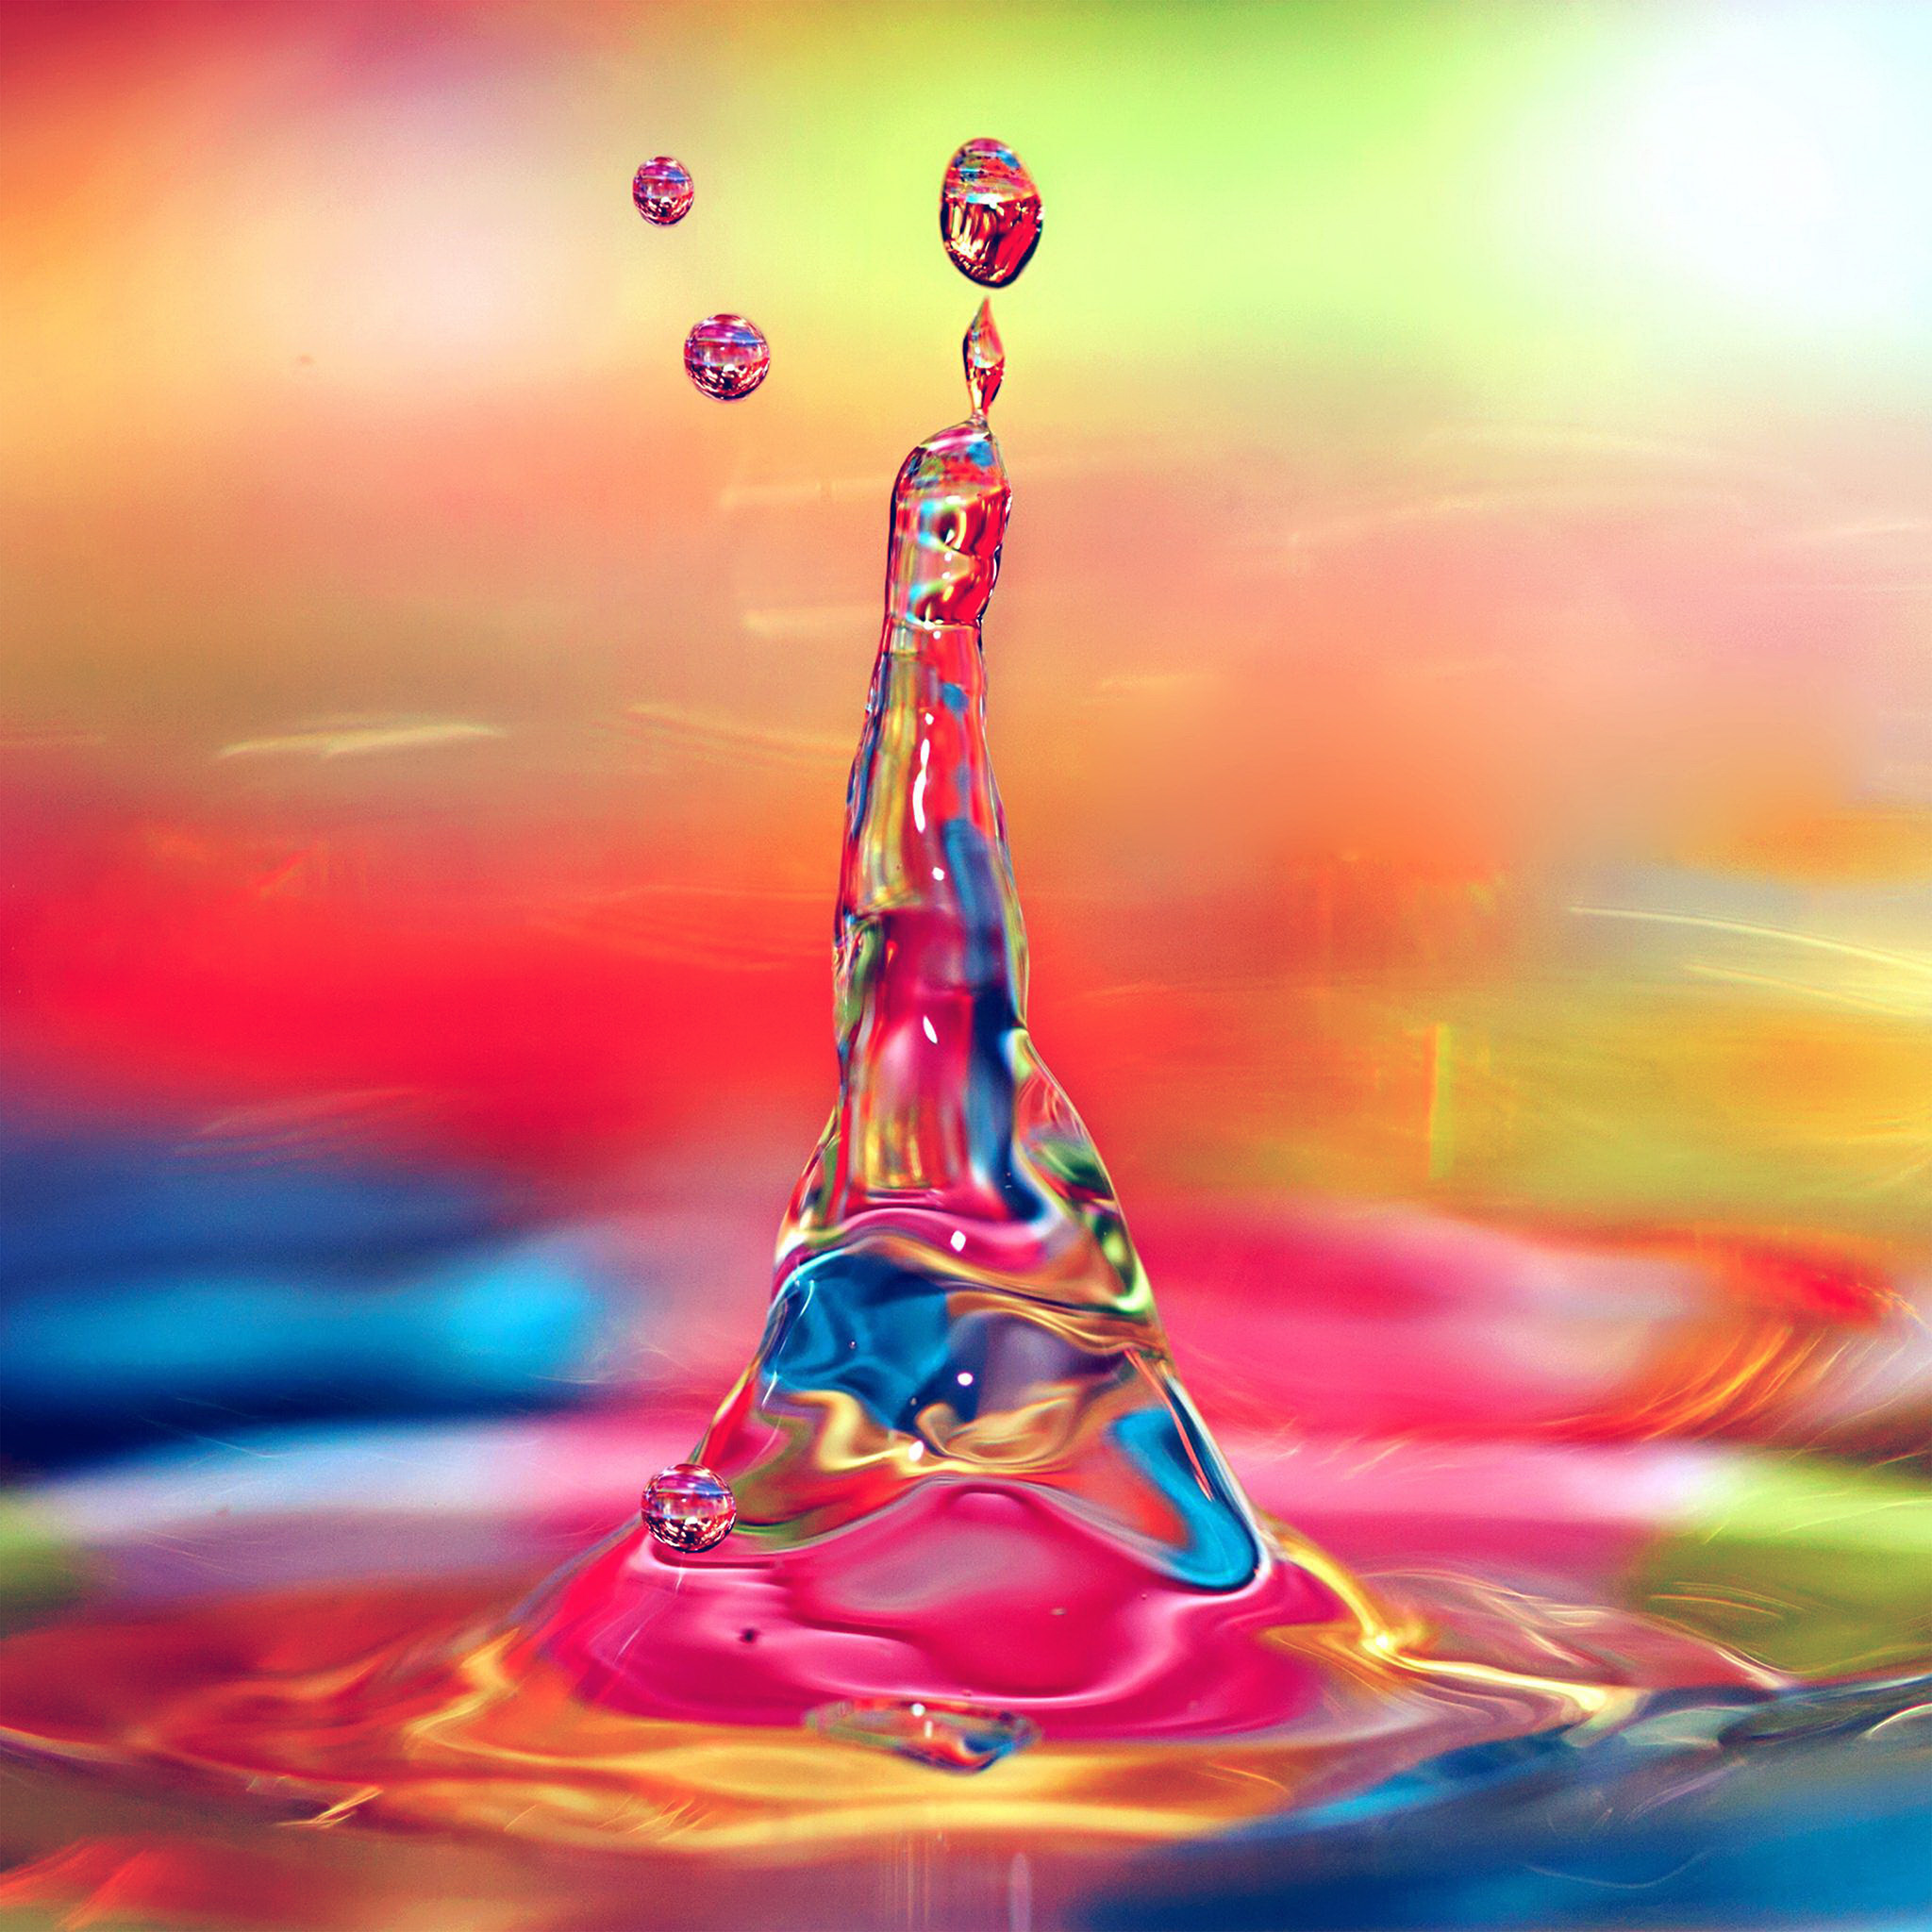 Colorful Iphone Wallpaper: Vs35-waterdrop-color